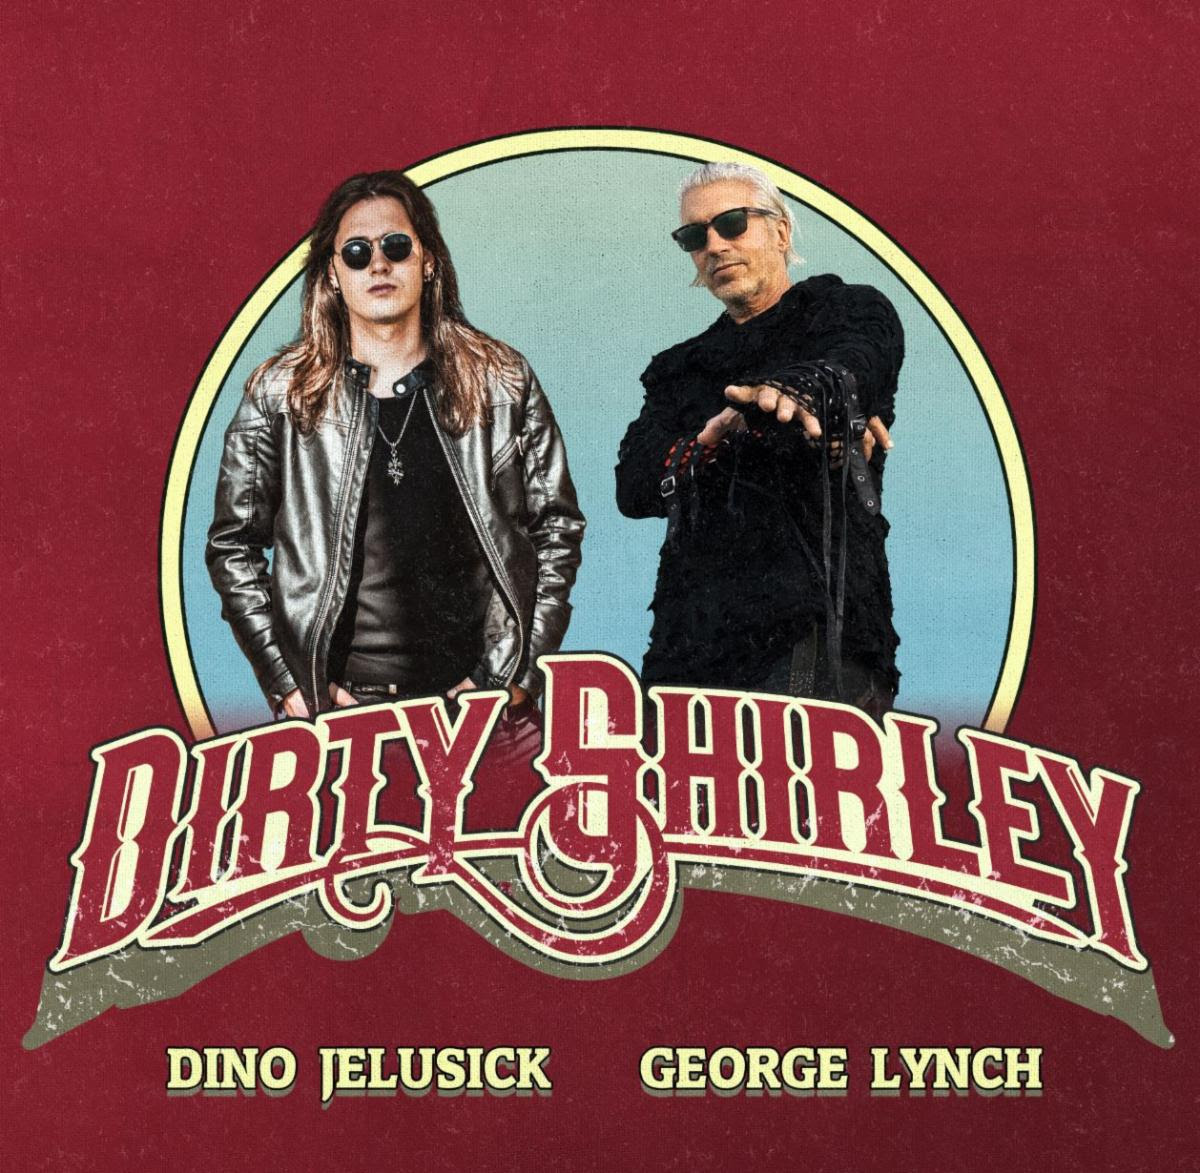 Frontiers Music SRL Announces Signing Of Dirty Shirley Featuring George Lynch